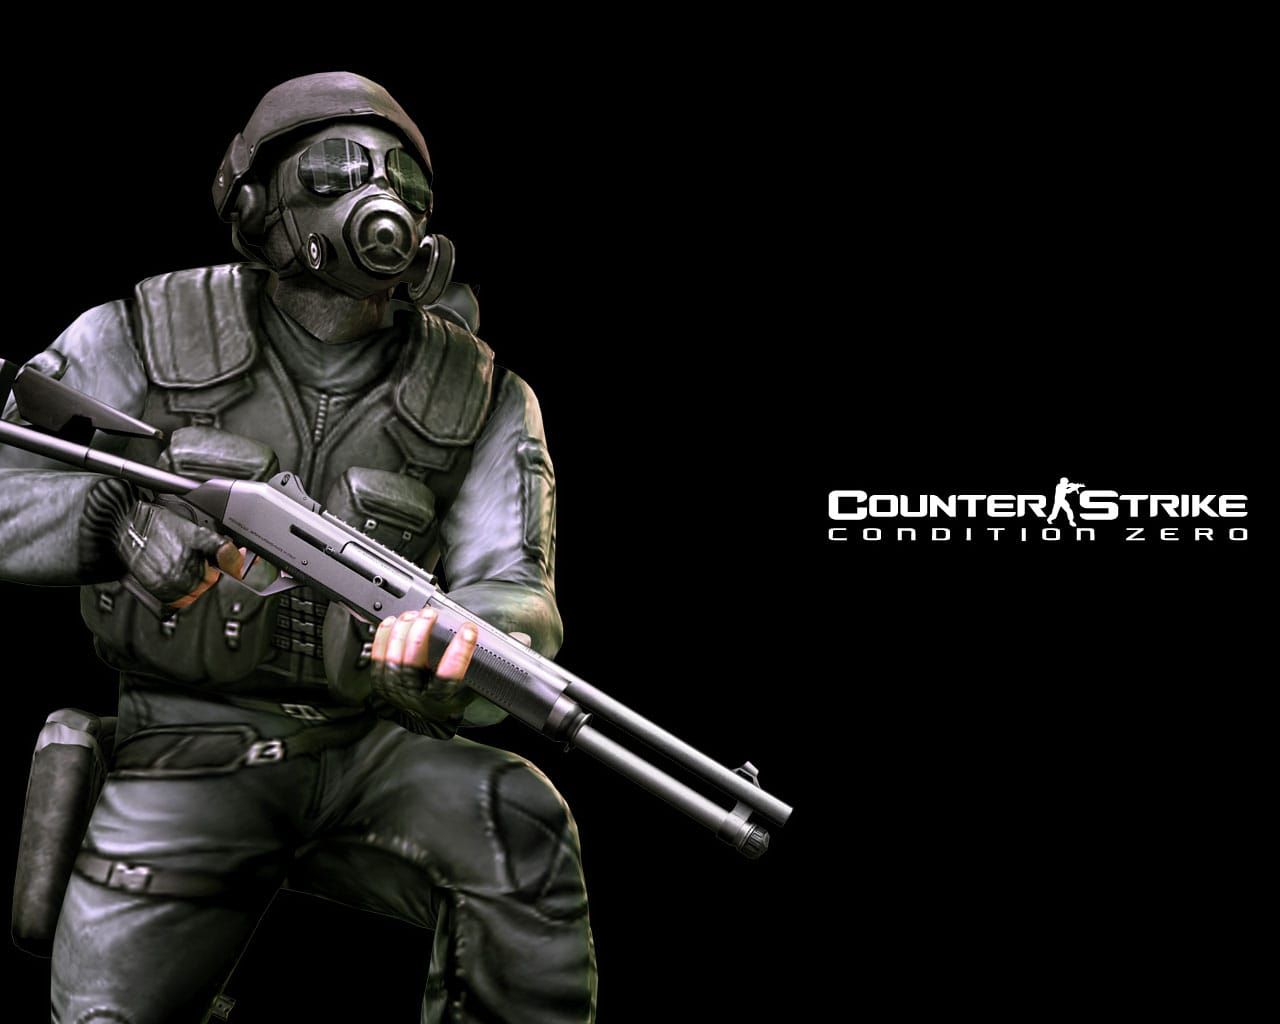 Counter-Strike: Condition Zero HD Desktop Wallpapers | 7wallpapers.net